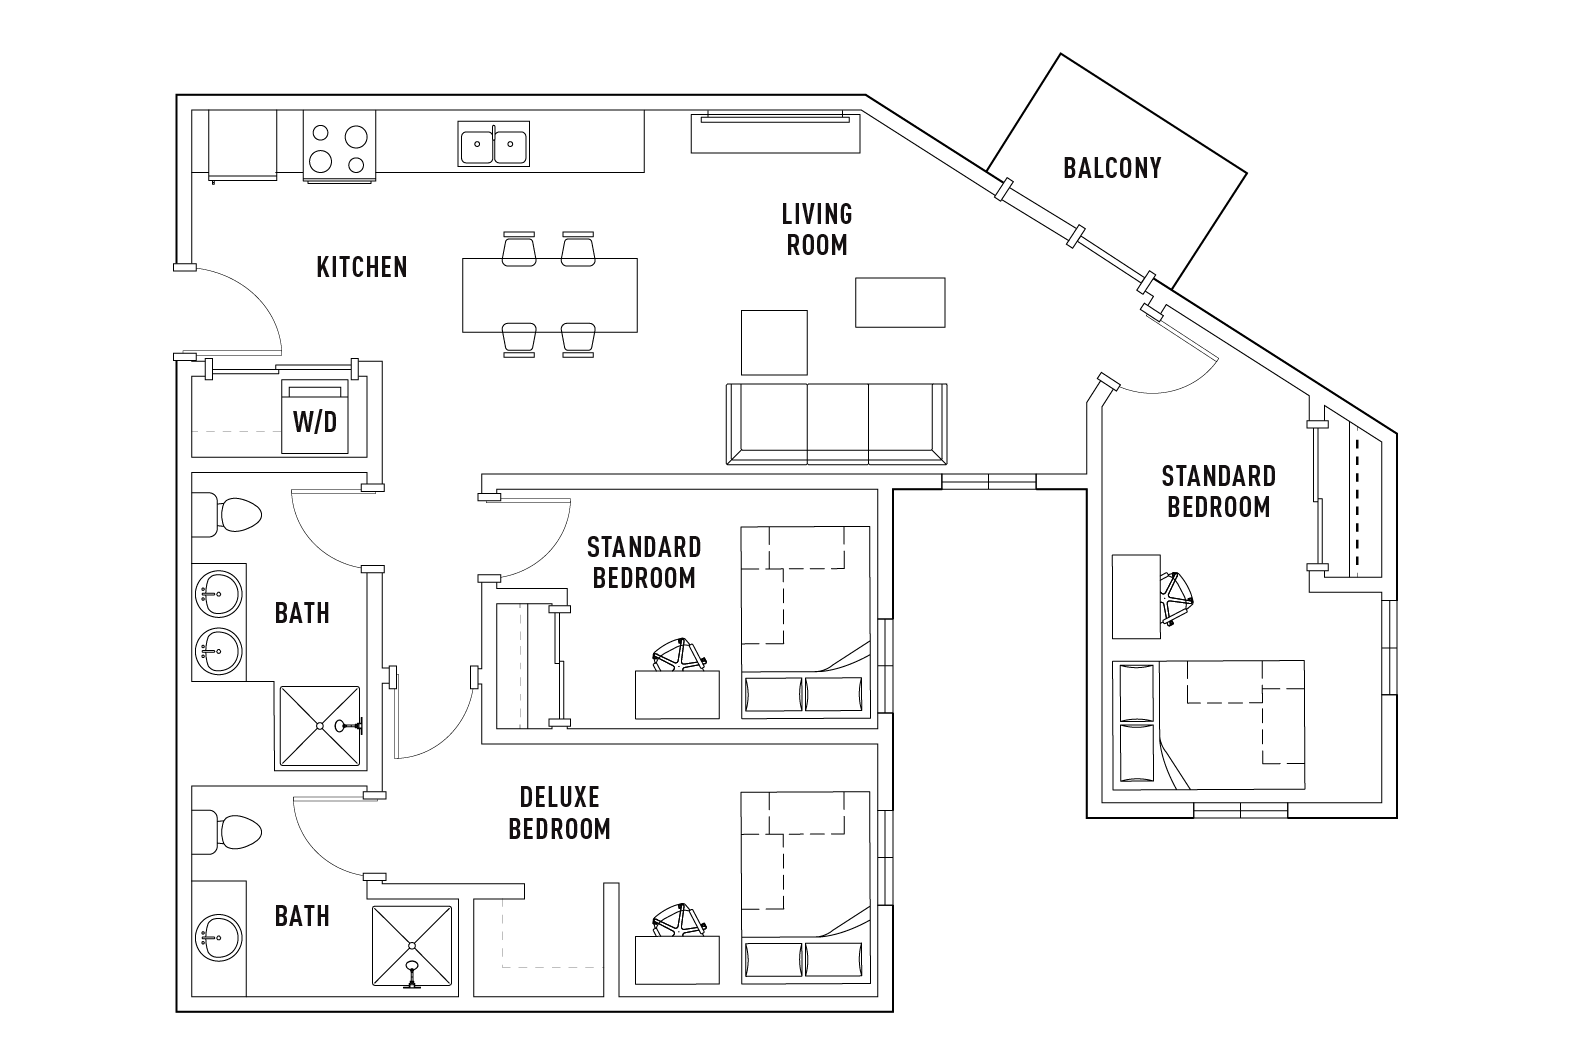 3 Bedroom 2 Bathroom E Standard Balcony Floor Plans